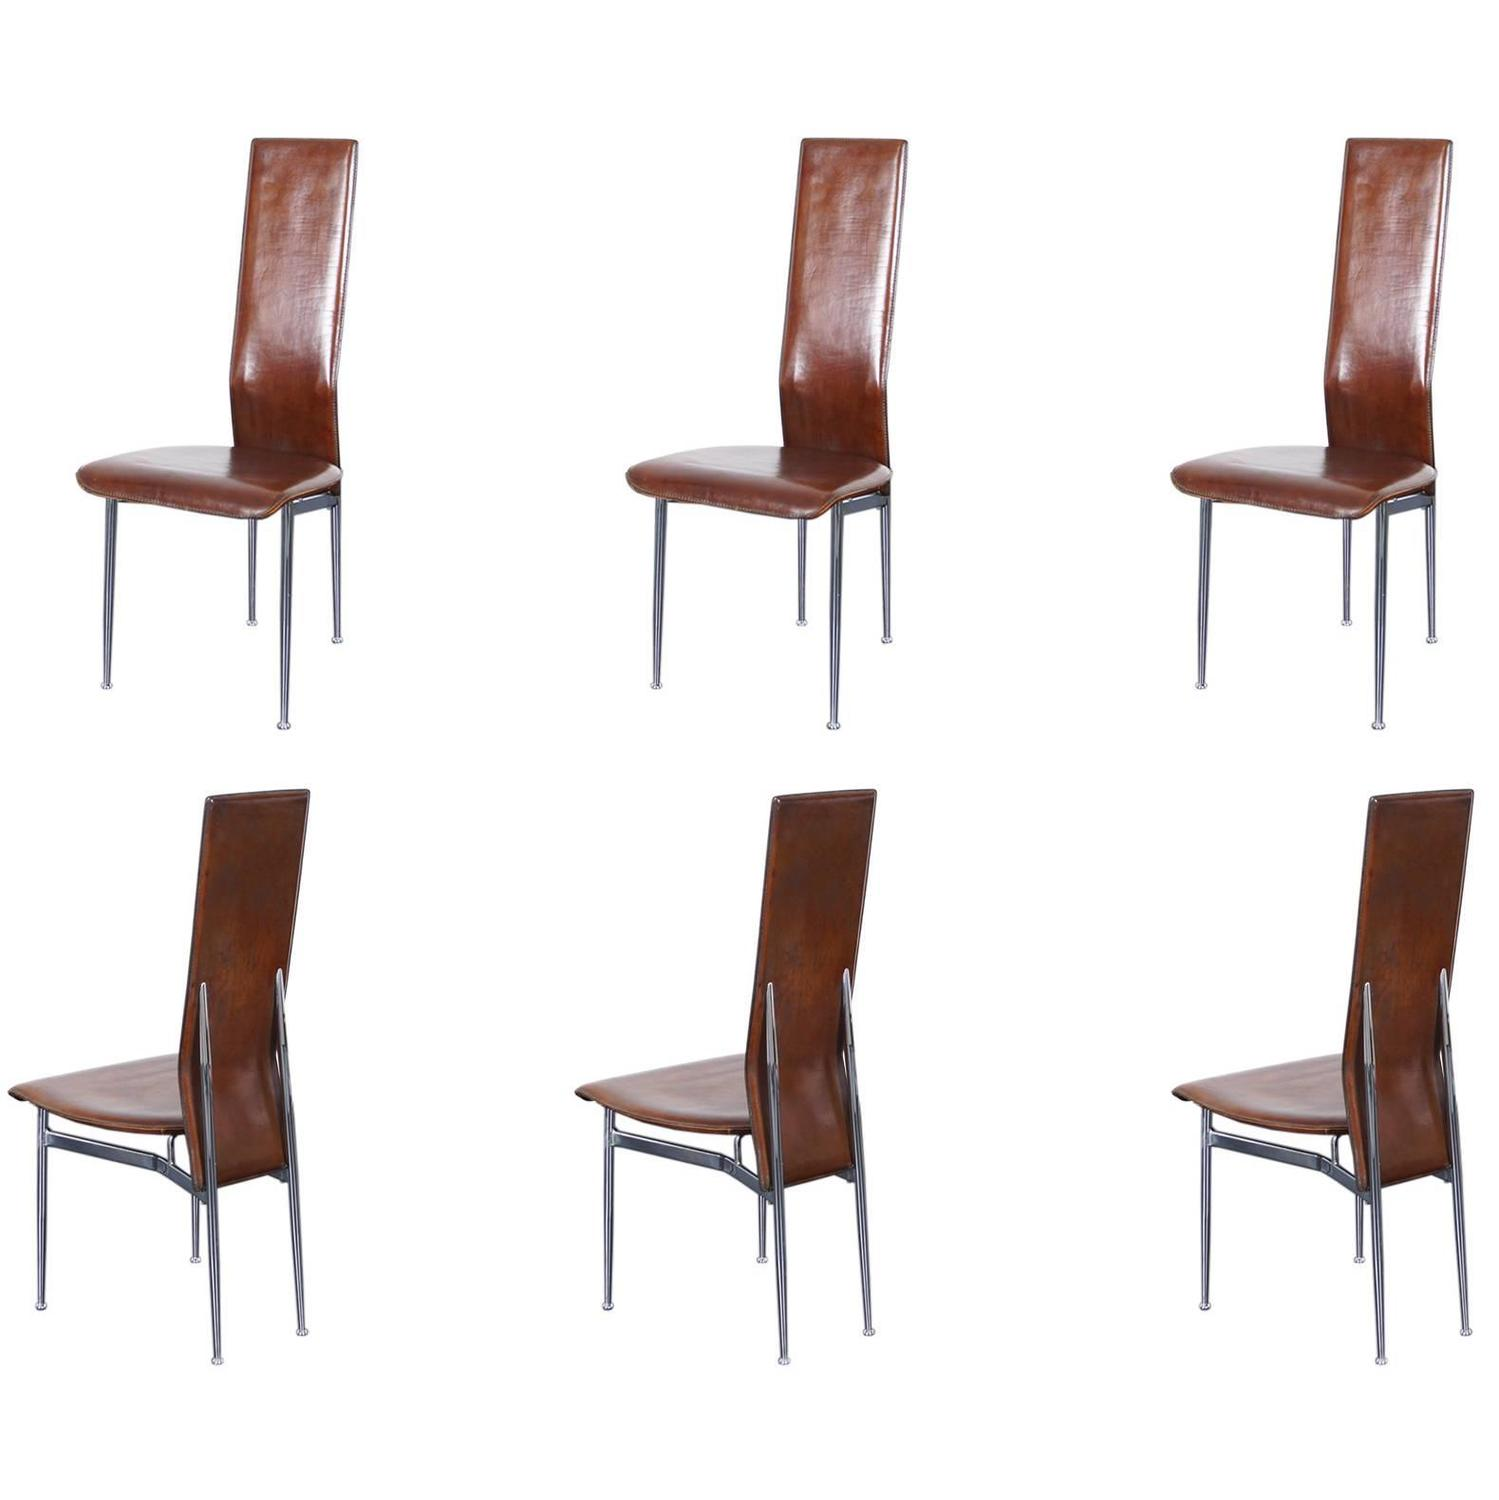 italian leather dining chairs for sale at 1stdibs On italian leather dining chairs modern